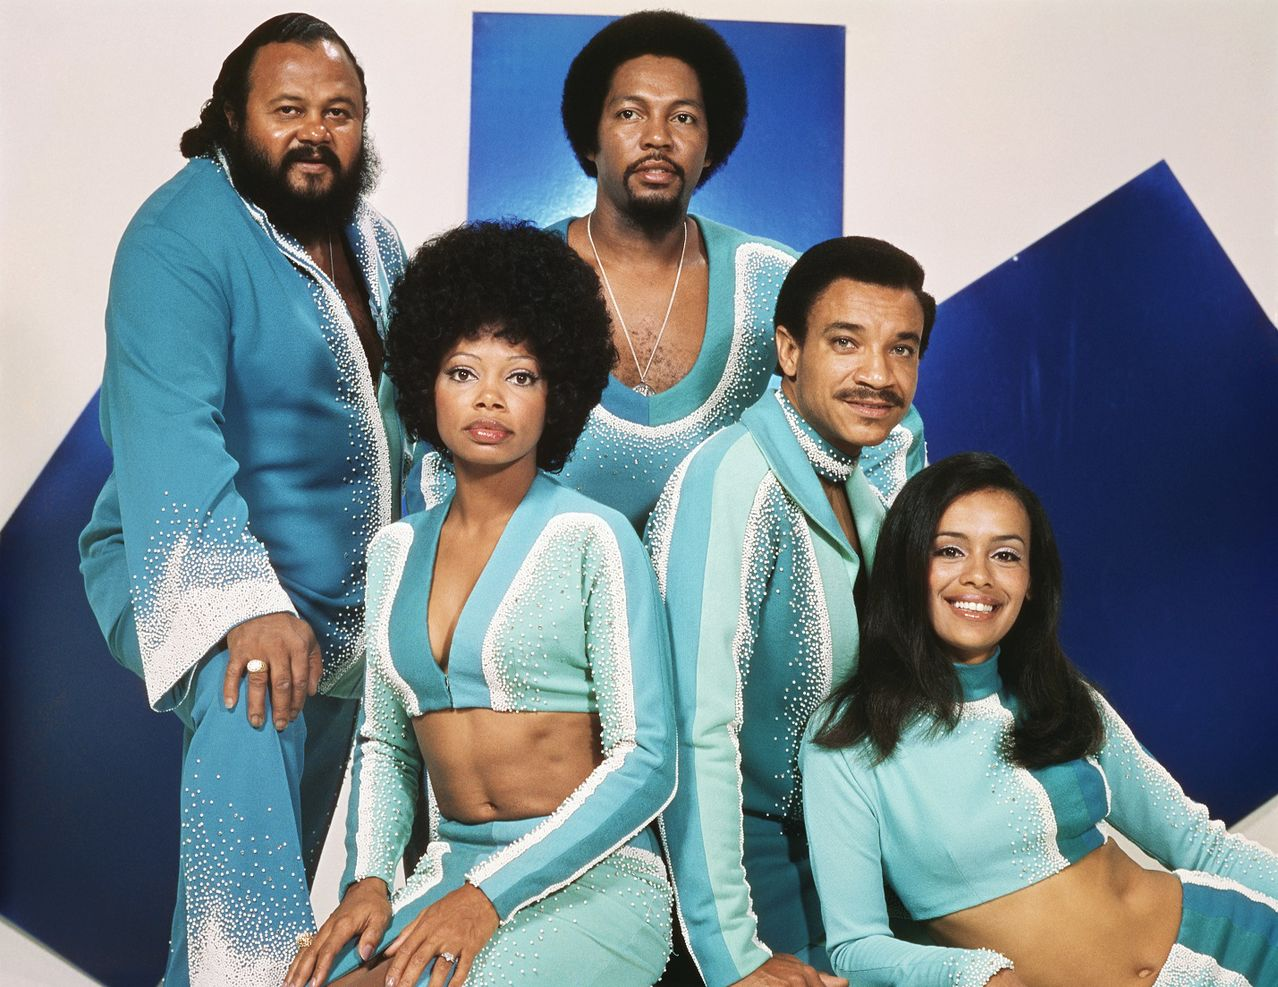 Up, Up and Away with Marilyn McCoo and Billy Davis Jr.